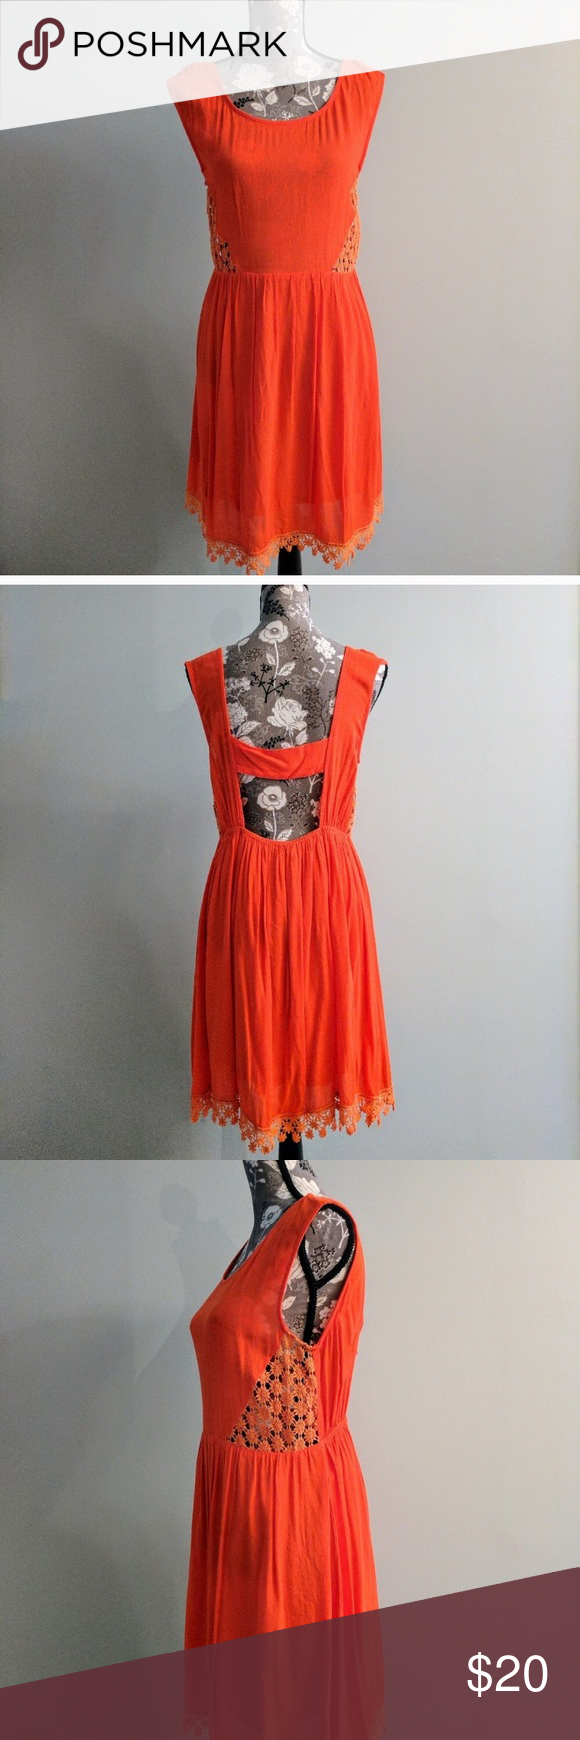 Bright orange crochet back cut out dress mini dresses bright and